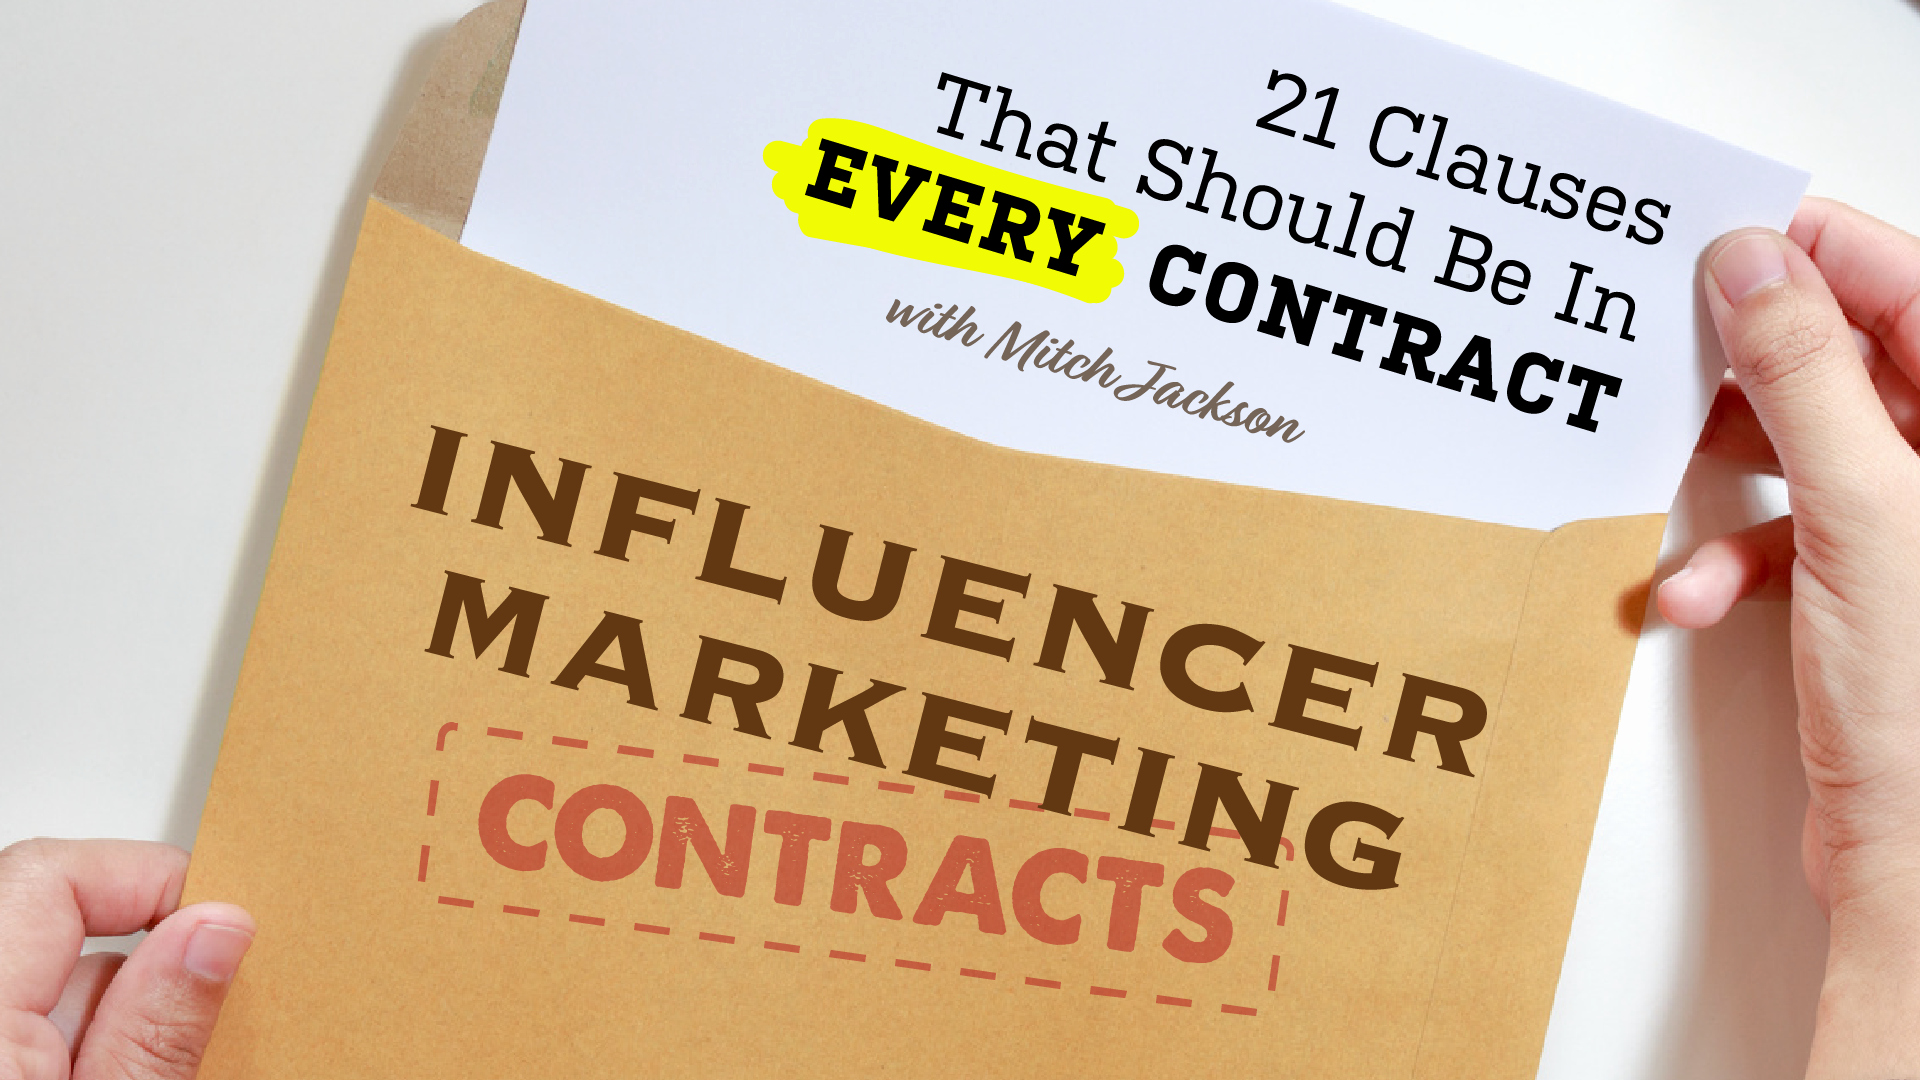 Digital Marketing Contract Template Elegant Influencer Marketing Contracts 21 Clauses to Always Include